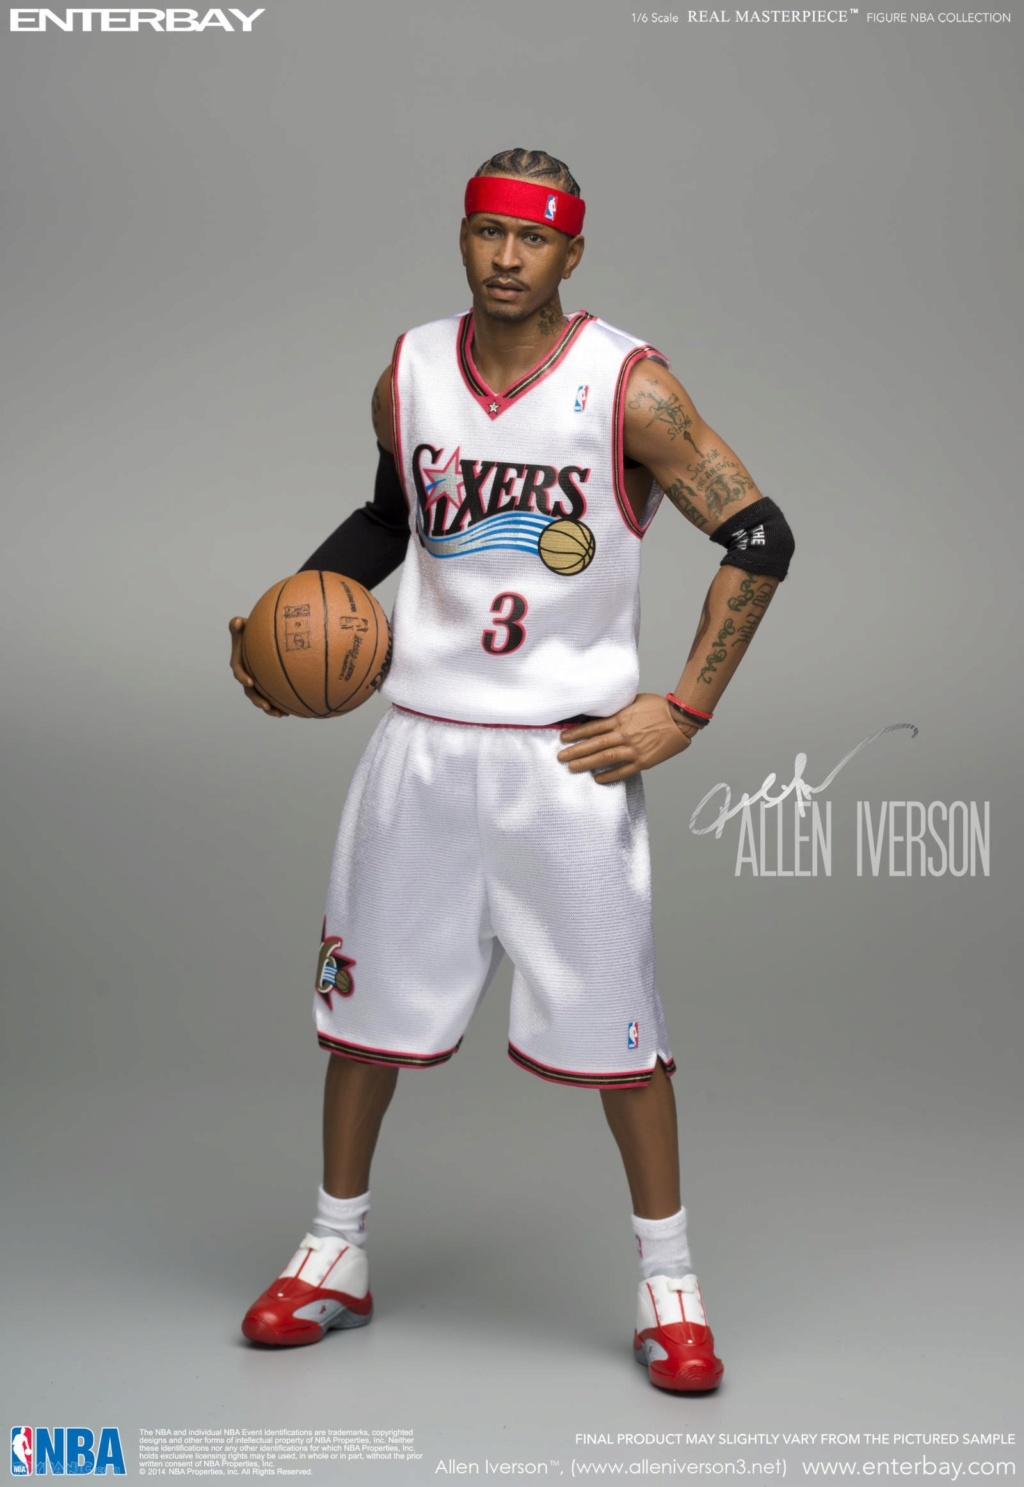 athlete - NEW PRODUCT: Enterbay: 1/6 Real Masterpiece NBA - Allen Iverson Action Figure (New Upgraded Re-edition) 52520226